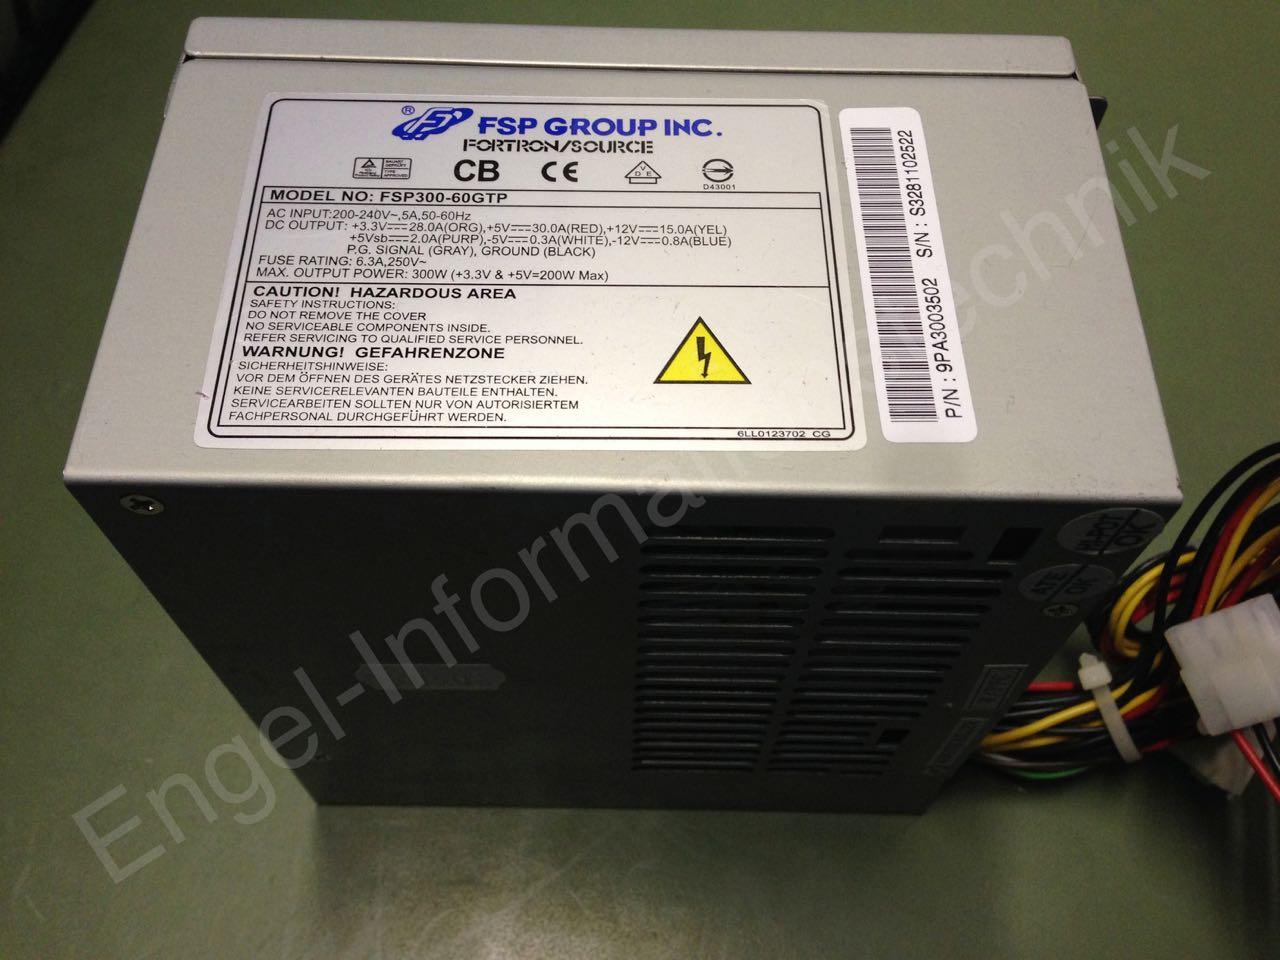 Fortron FSP300-60GTP